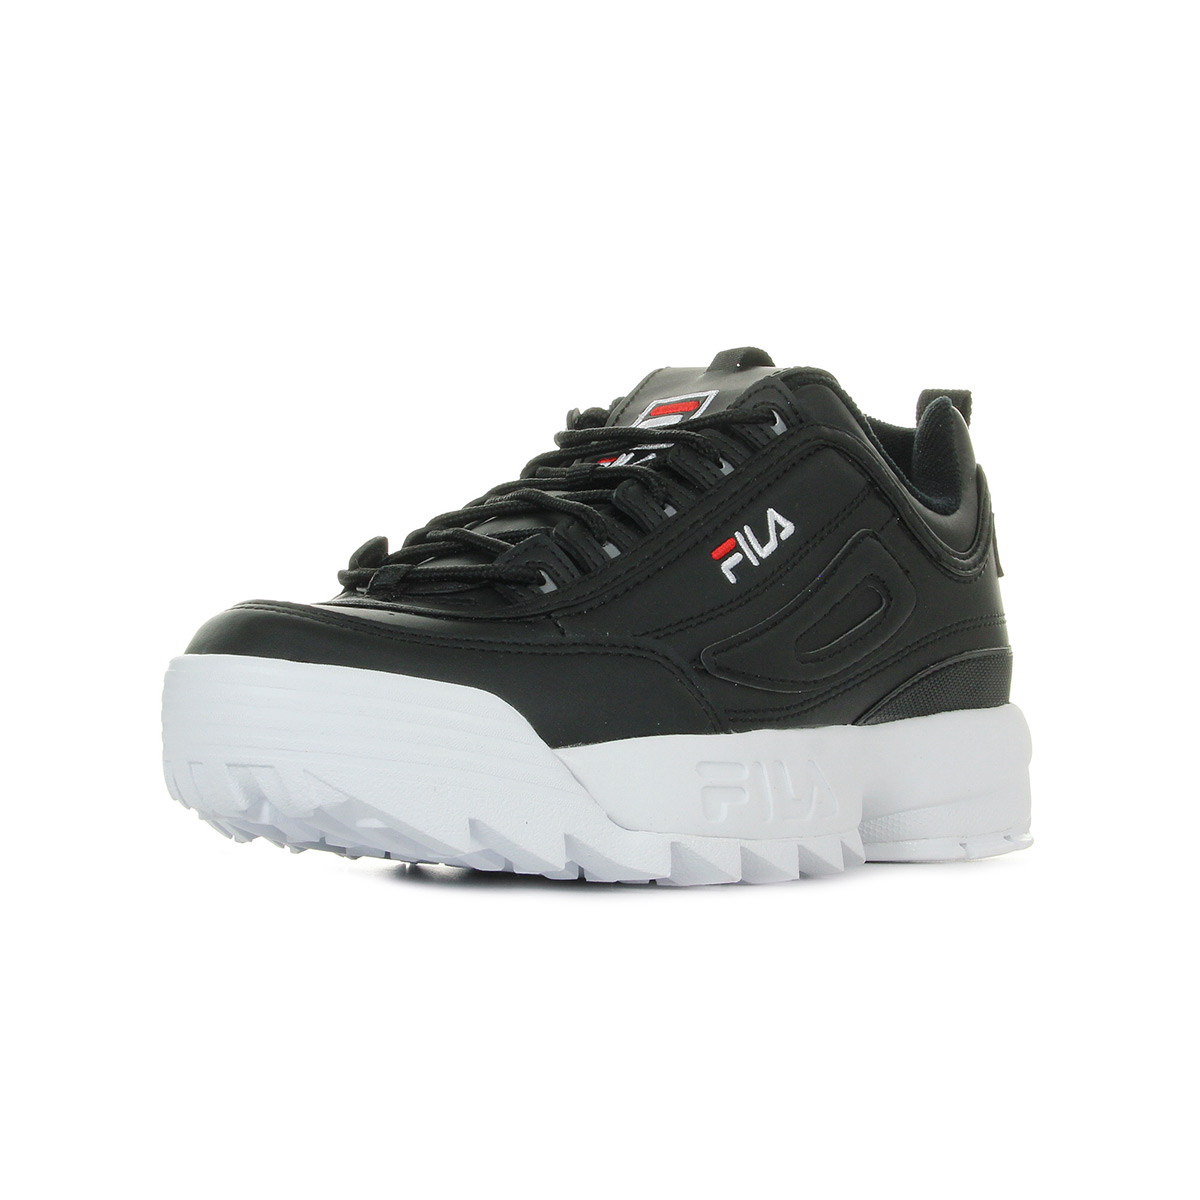 Homme Low Fila 101026225yBaskets Disruptor Mode XOPkuwZiT